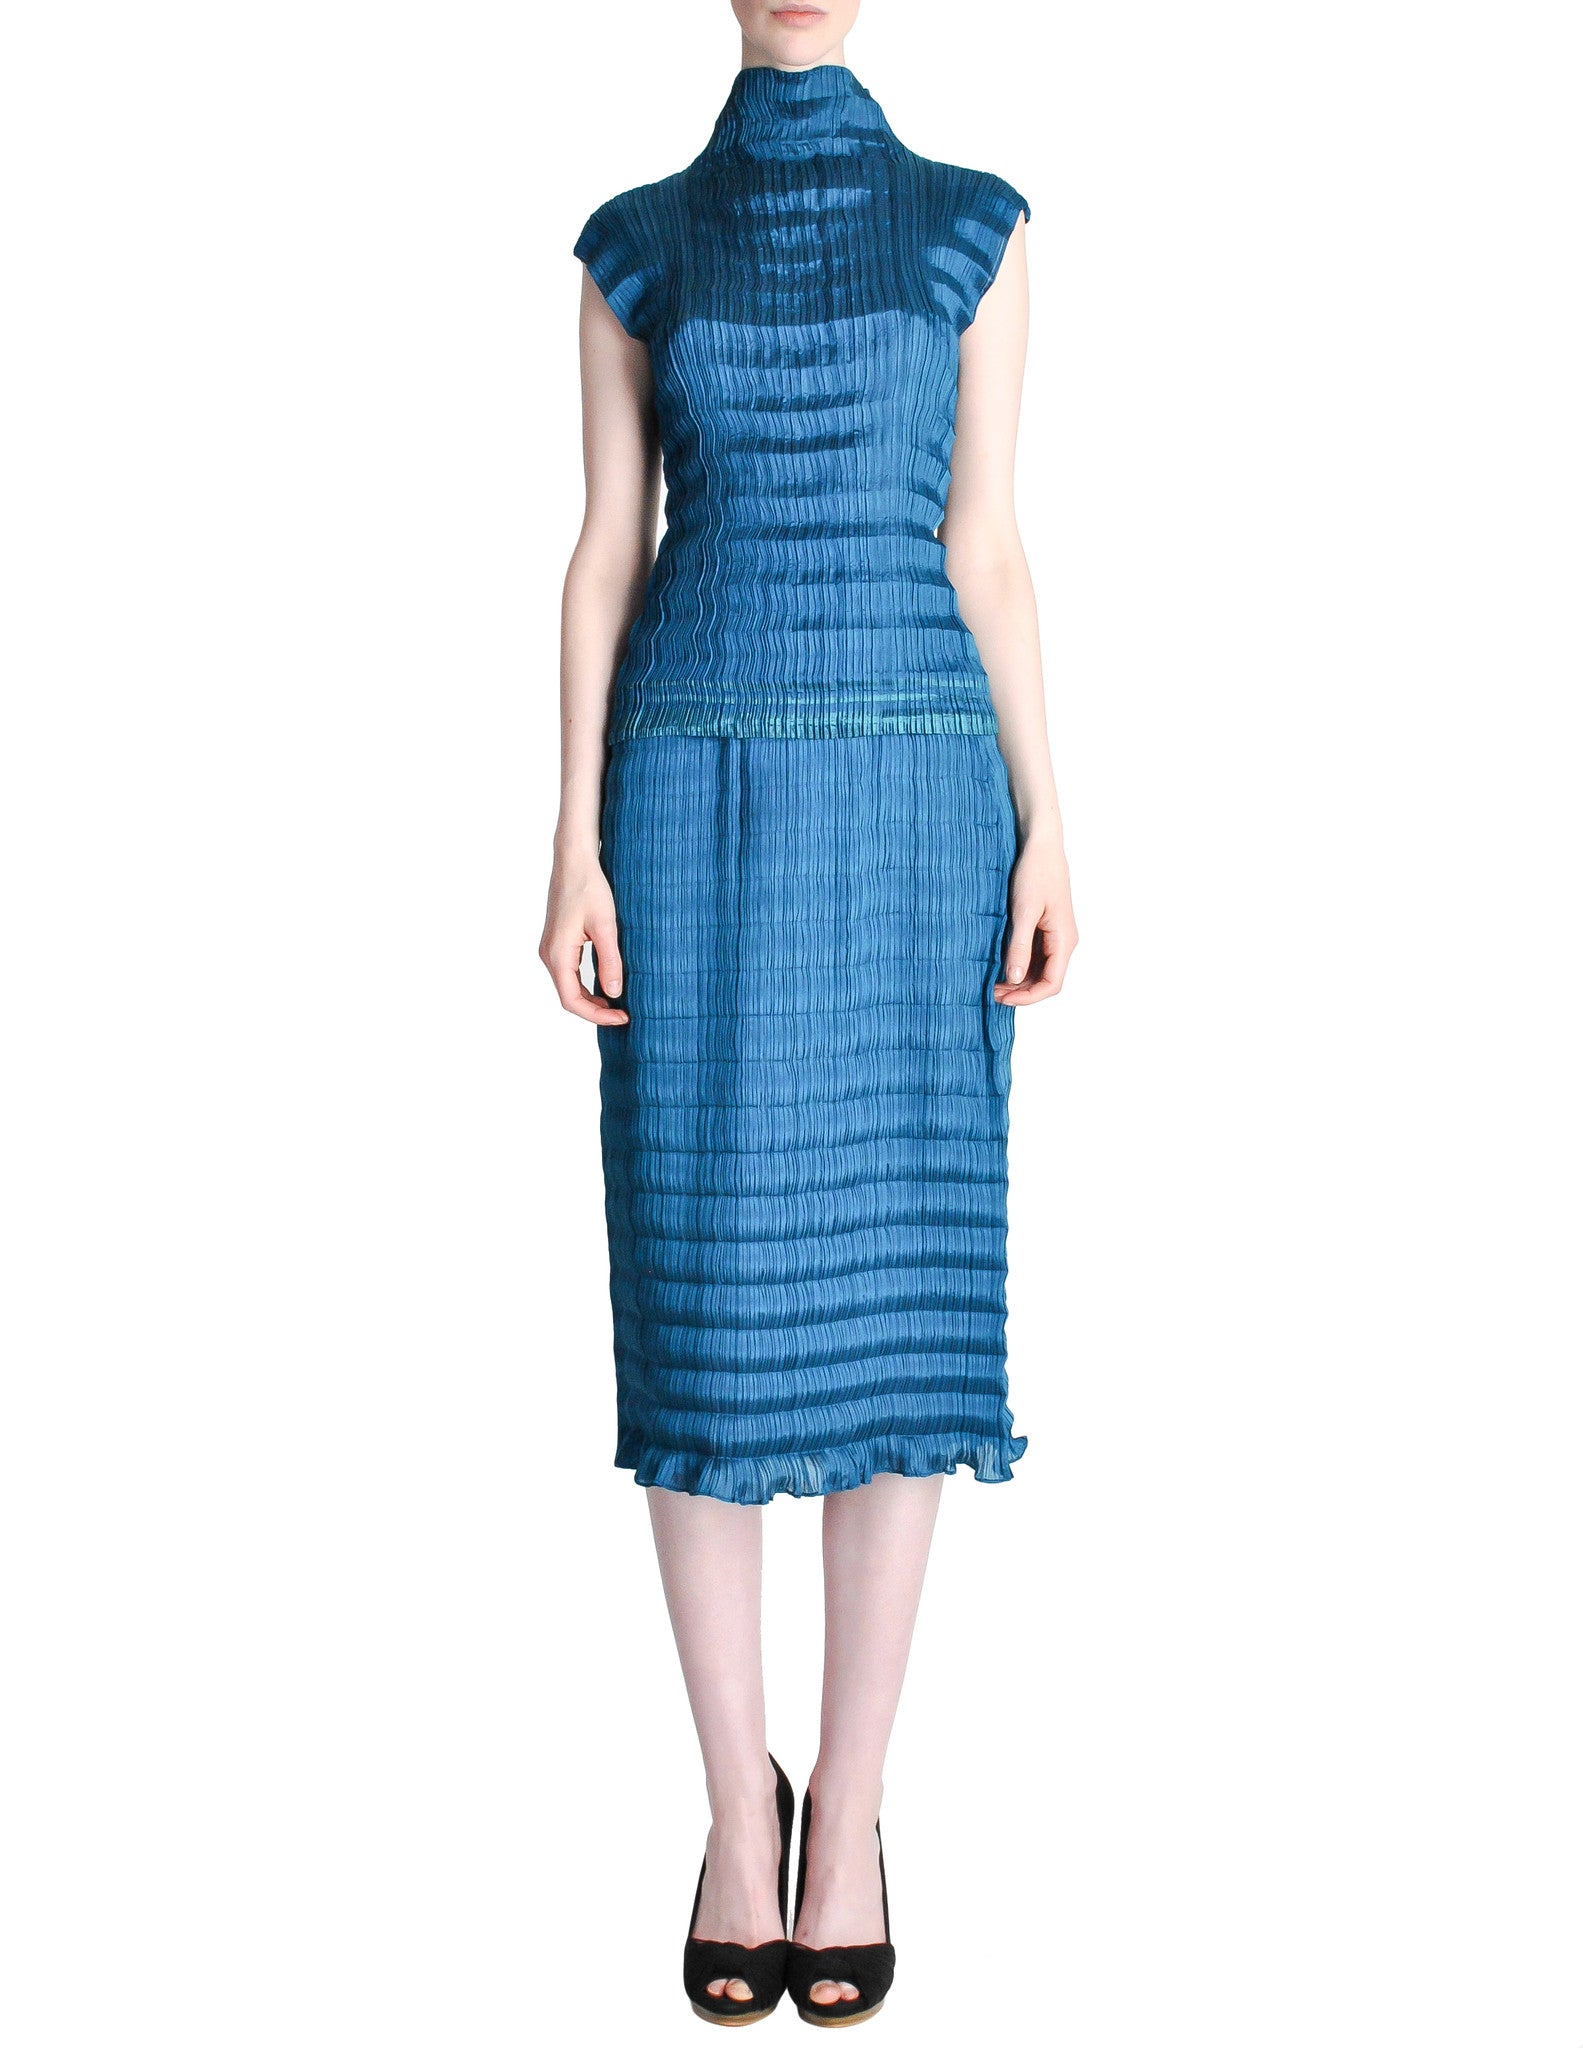 Issey Miyake Vintage Cerulean Blue Pleated Two Piece Top & Skirt Set - Amarcord Vintage Fashion  - 1